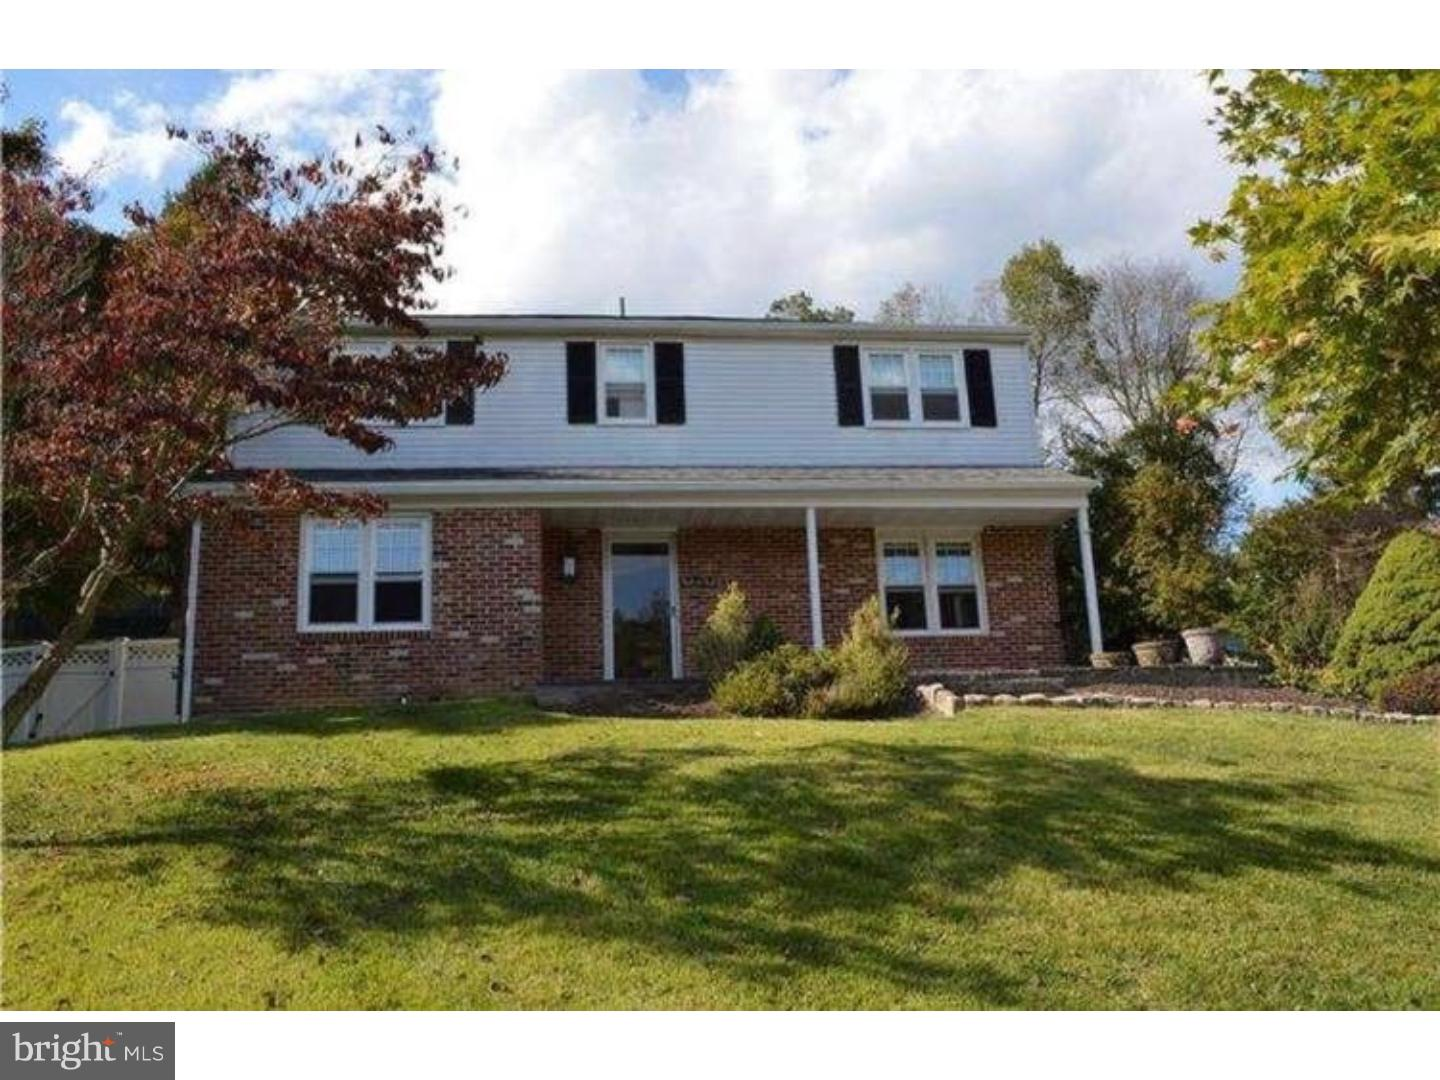 7 Darlene Circle Broomall, PA 19008